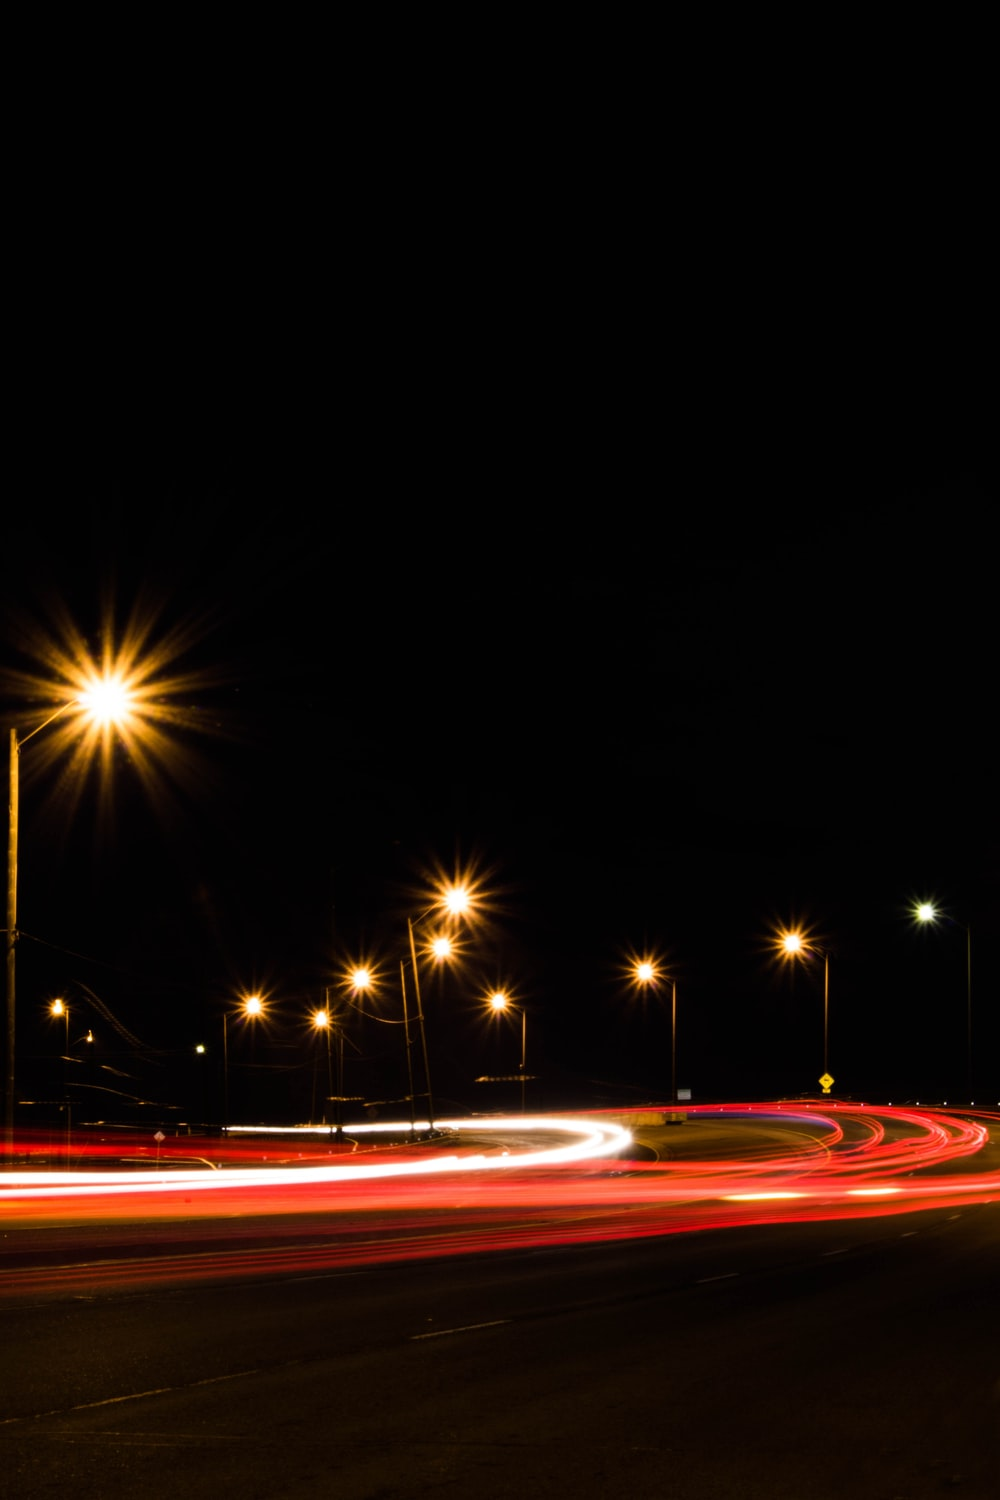 long exposure photography of road during nighttime